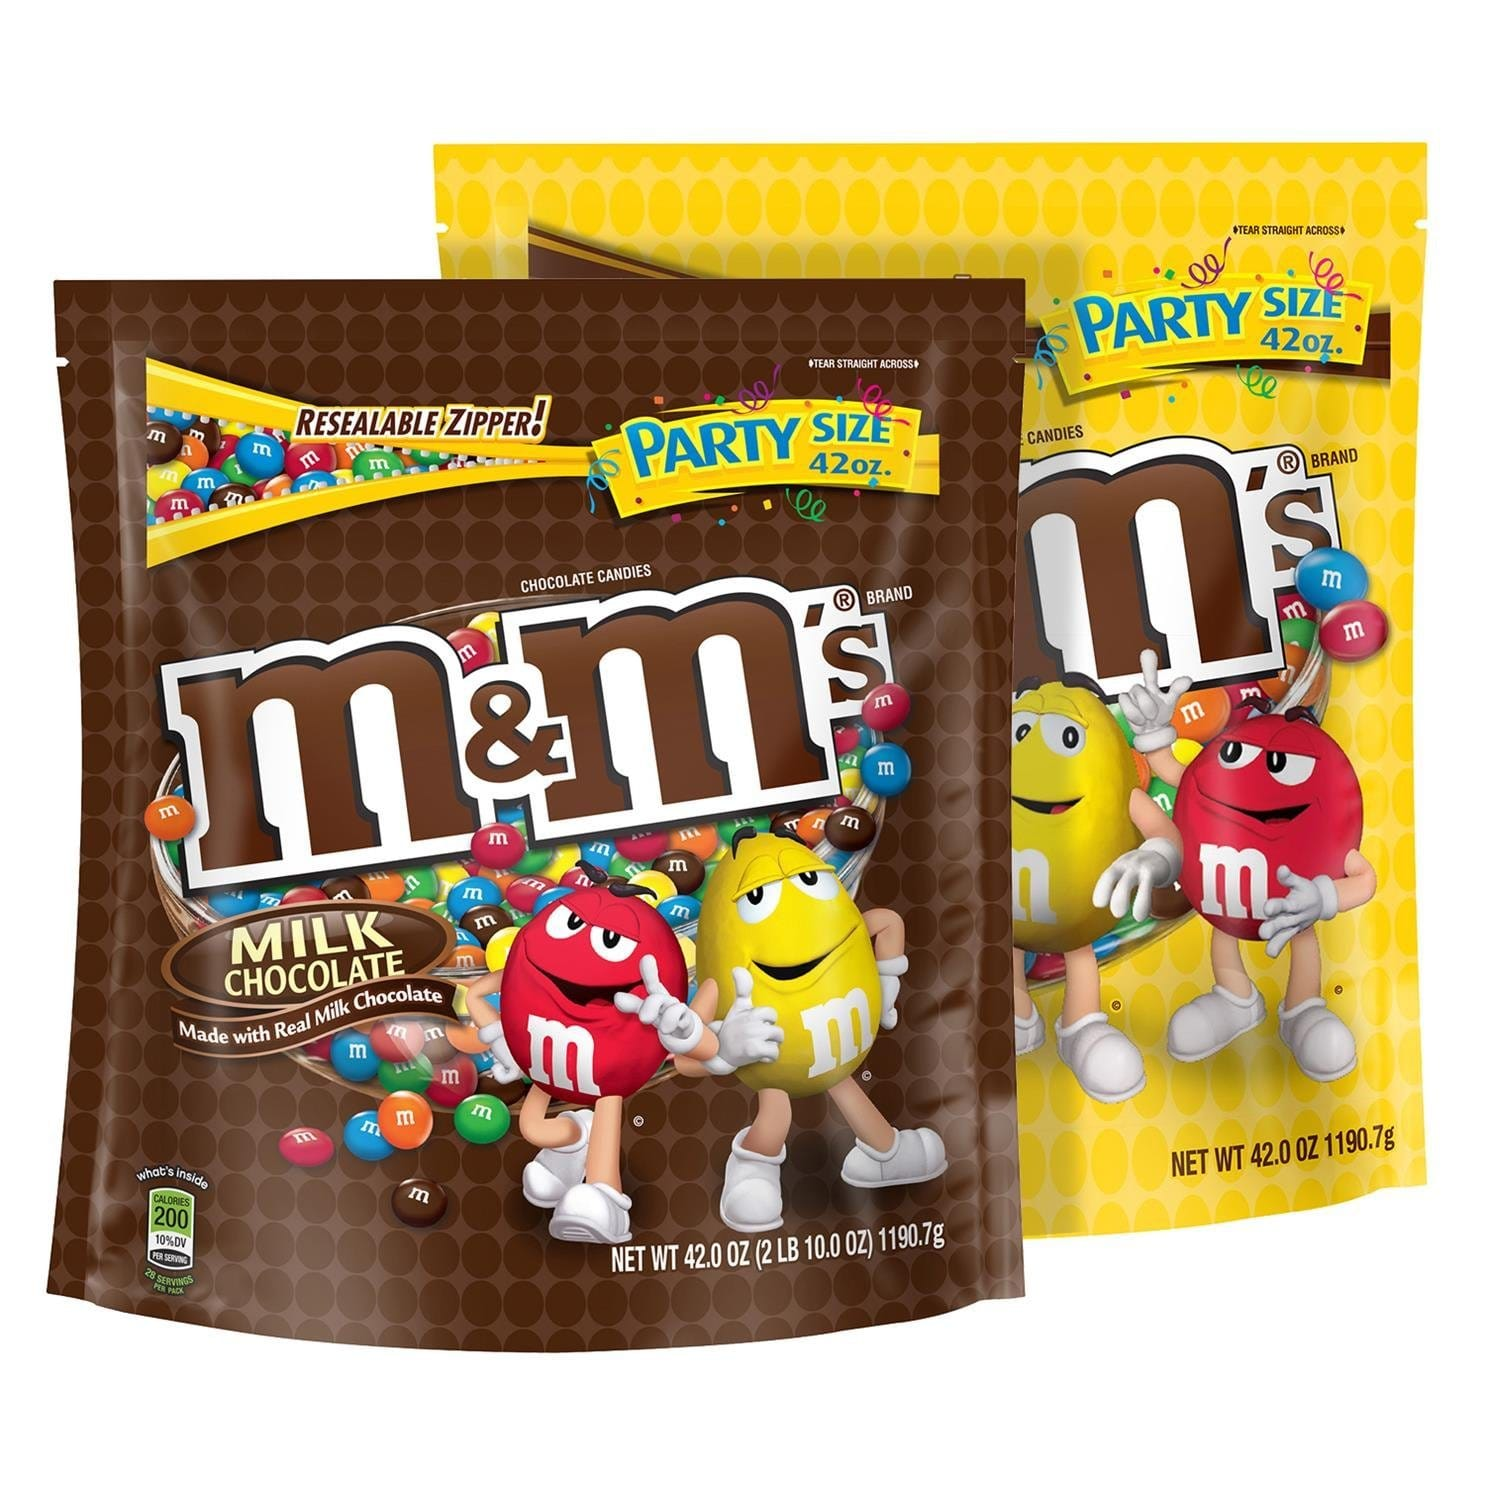 2-Pack 42oz M&M'S Milk Chocolate and Peanut Candy Mix Party Size $6.27 + Free Shipping w/ prime